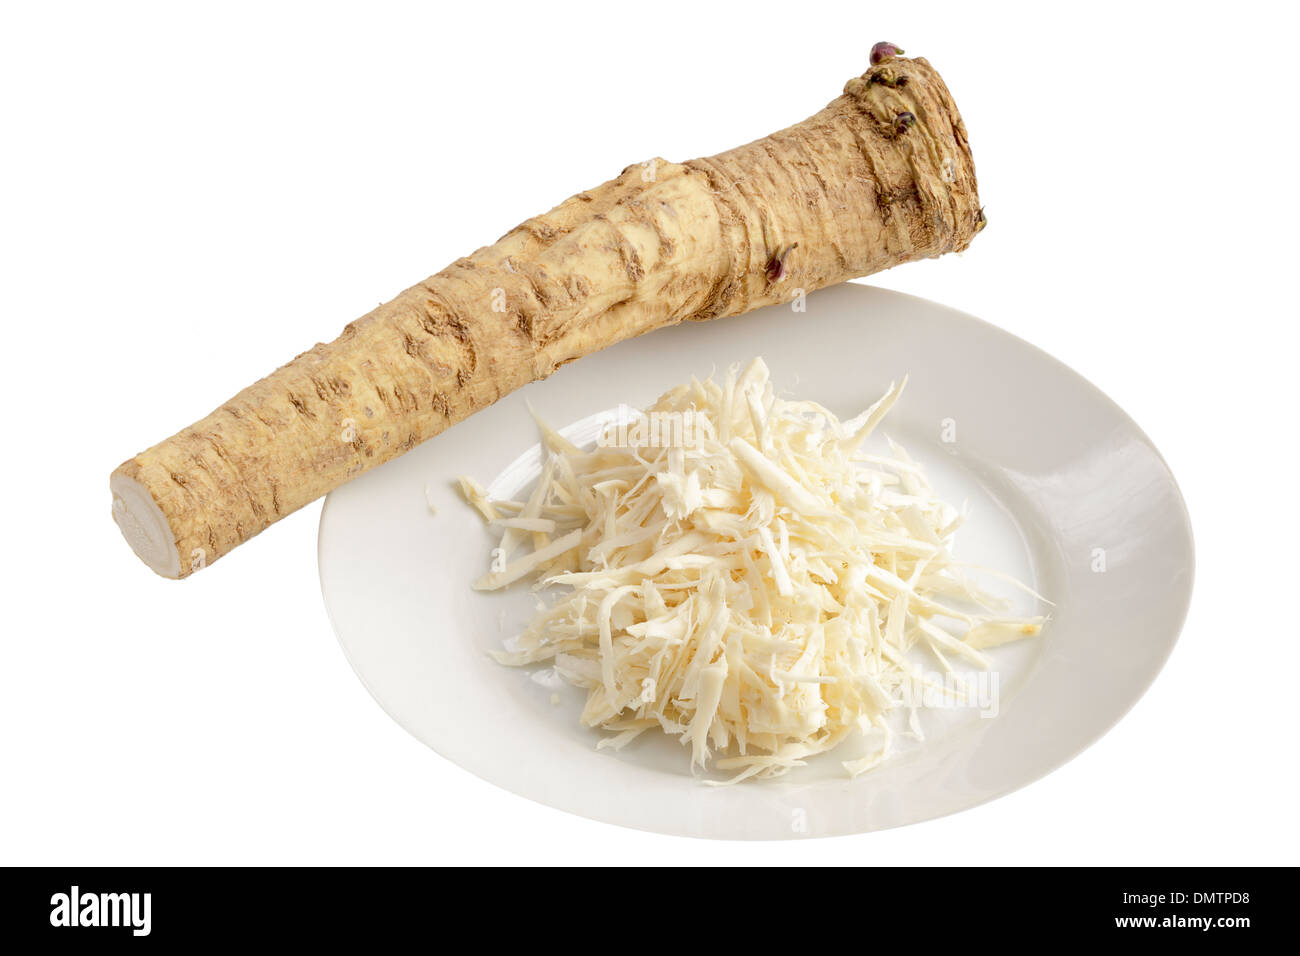 Horseradish, whole and grated - Stock Image